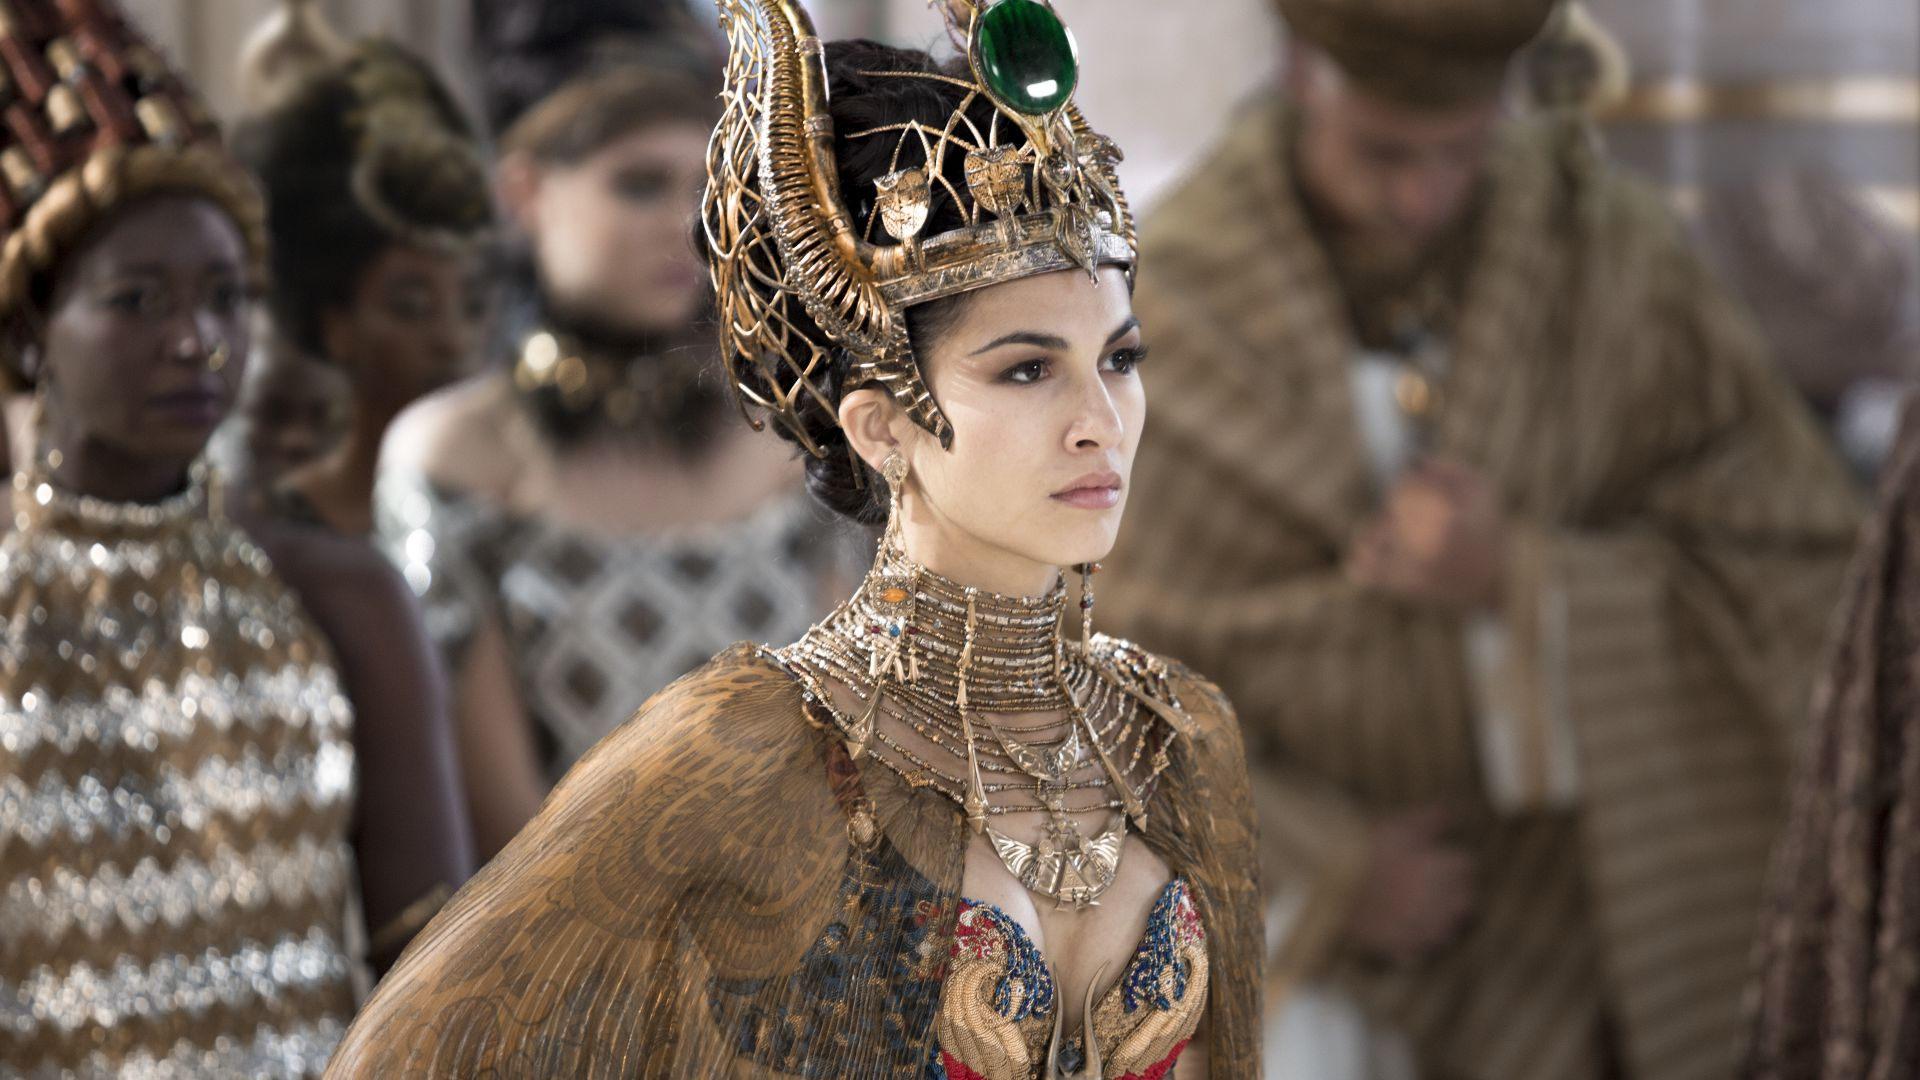 Gods of Egypt, Elodie Yung (horizontal)